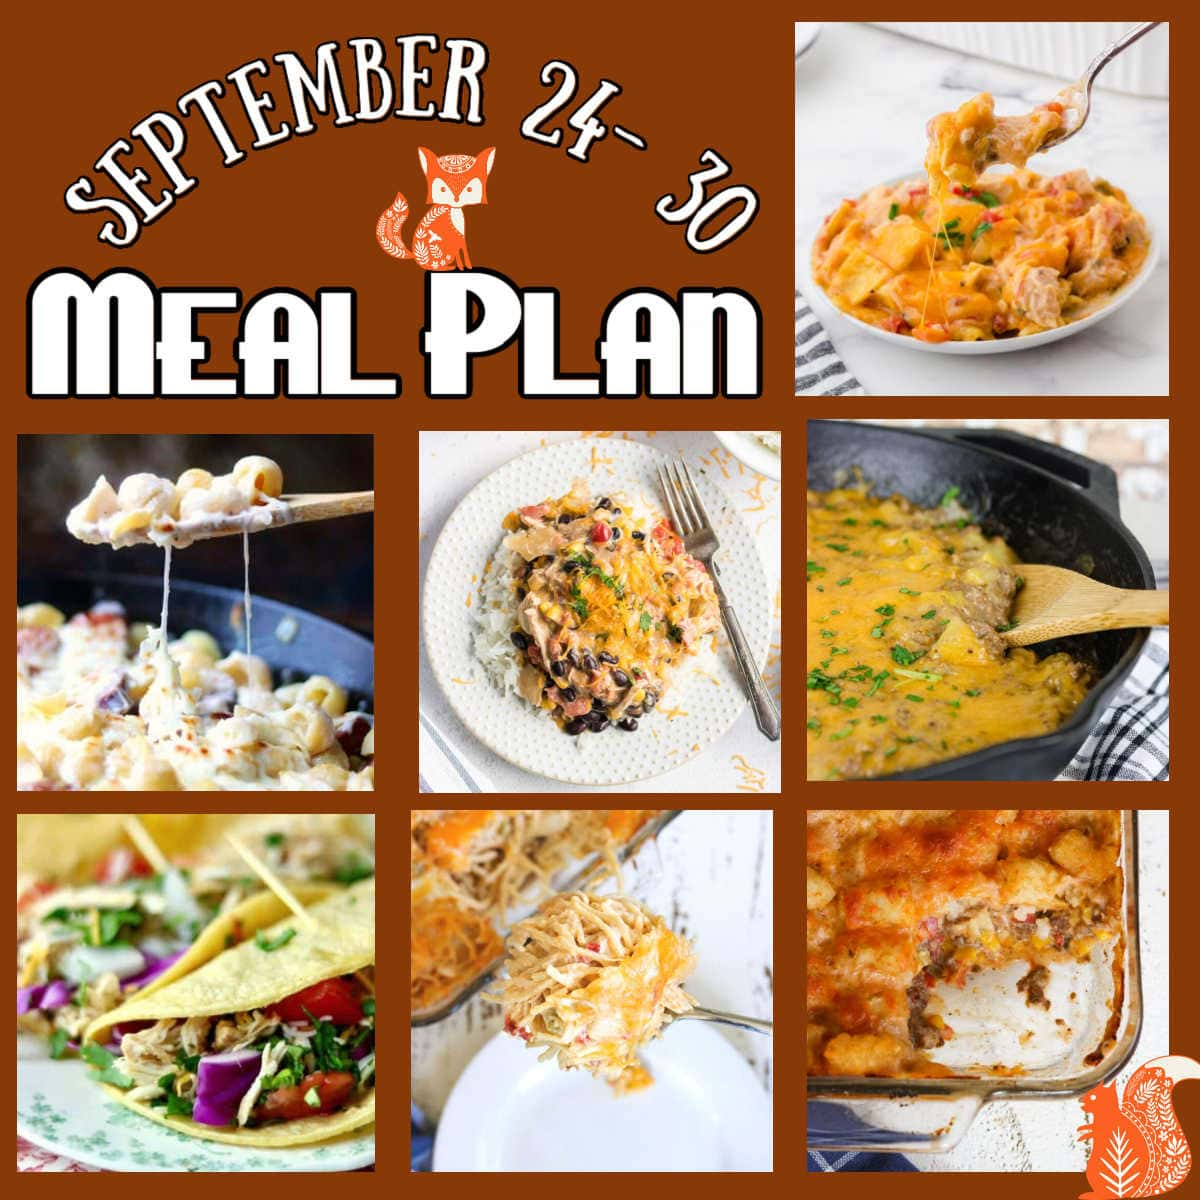 Meal Plan 40 title image collage with text overlay.